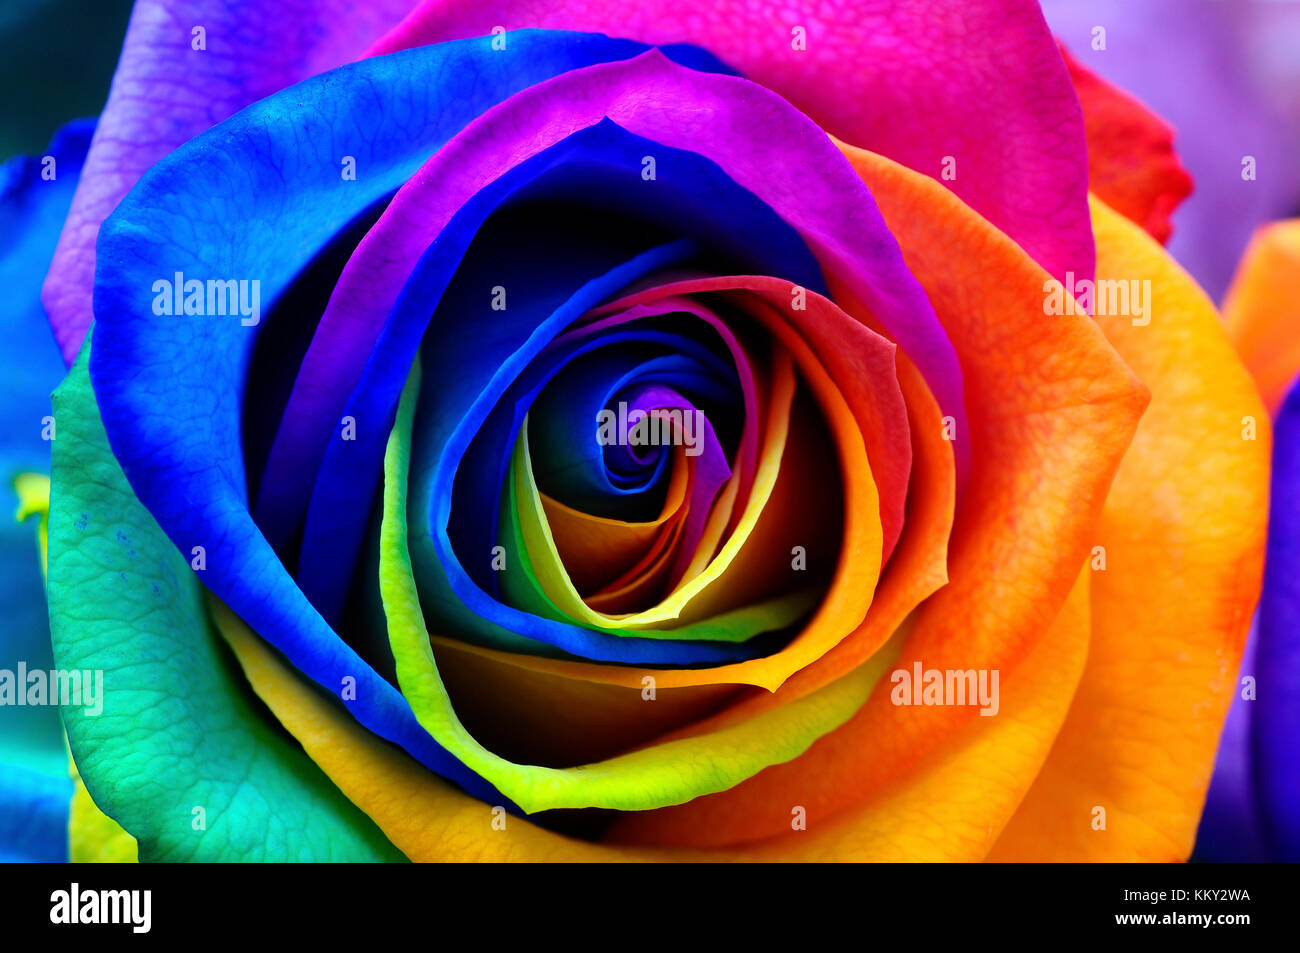 Multicolored rose stock photos multicolored rose stock for Multi colored rose petals